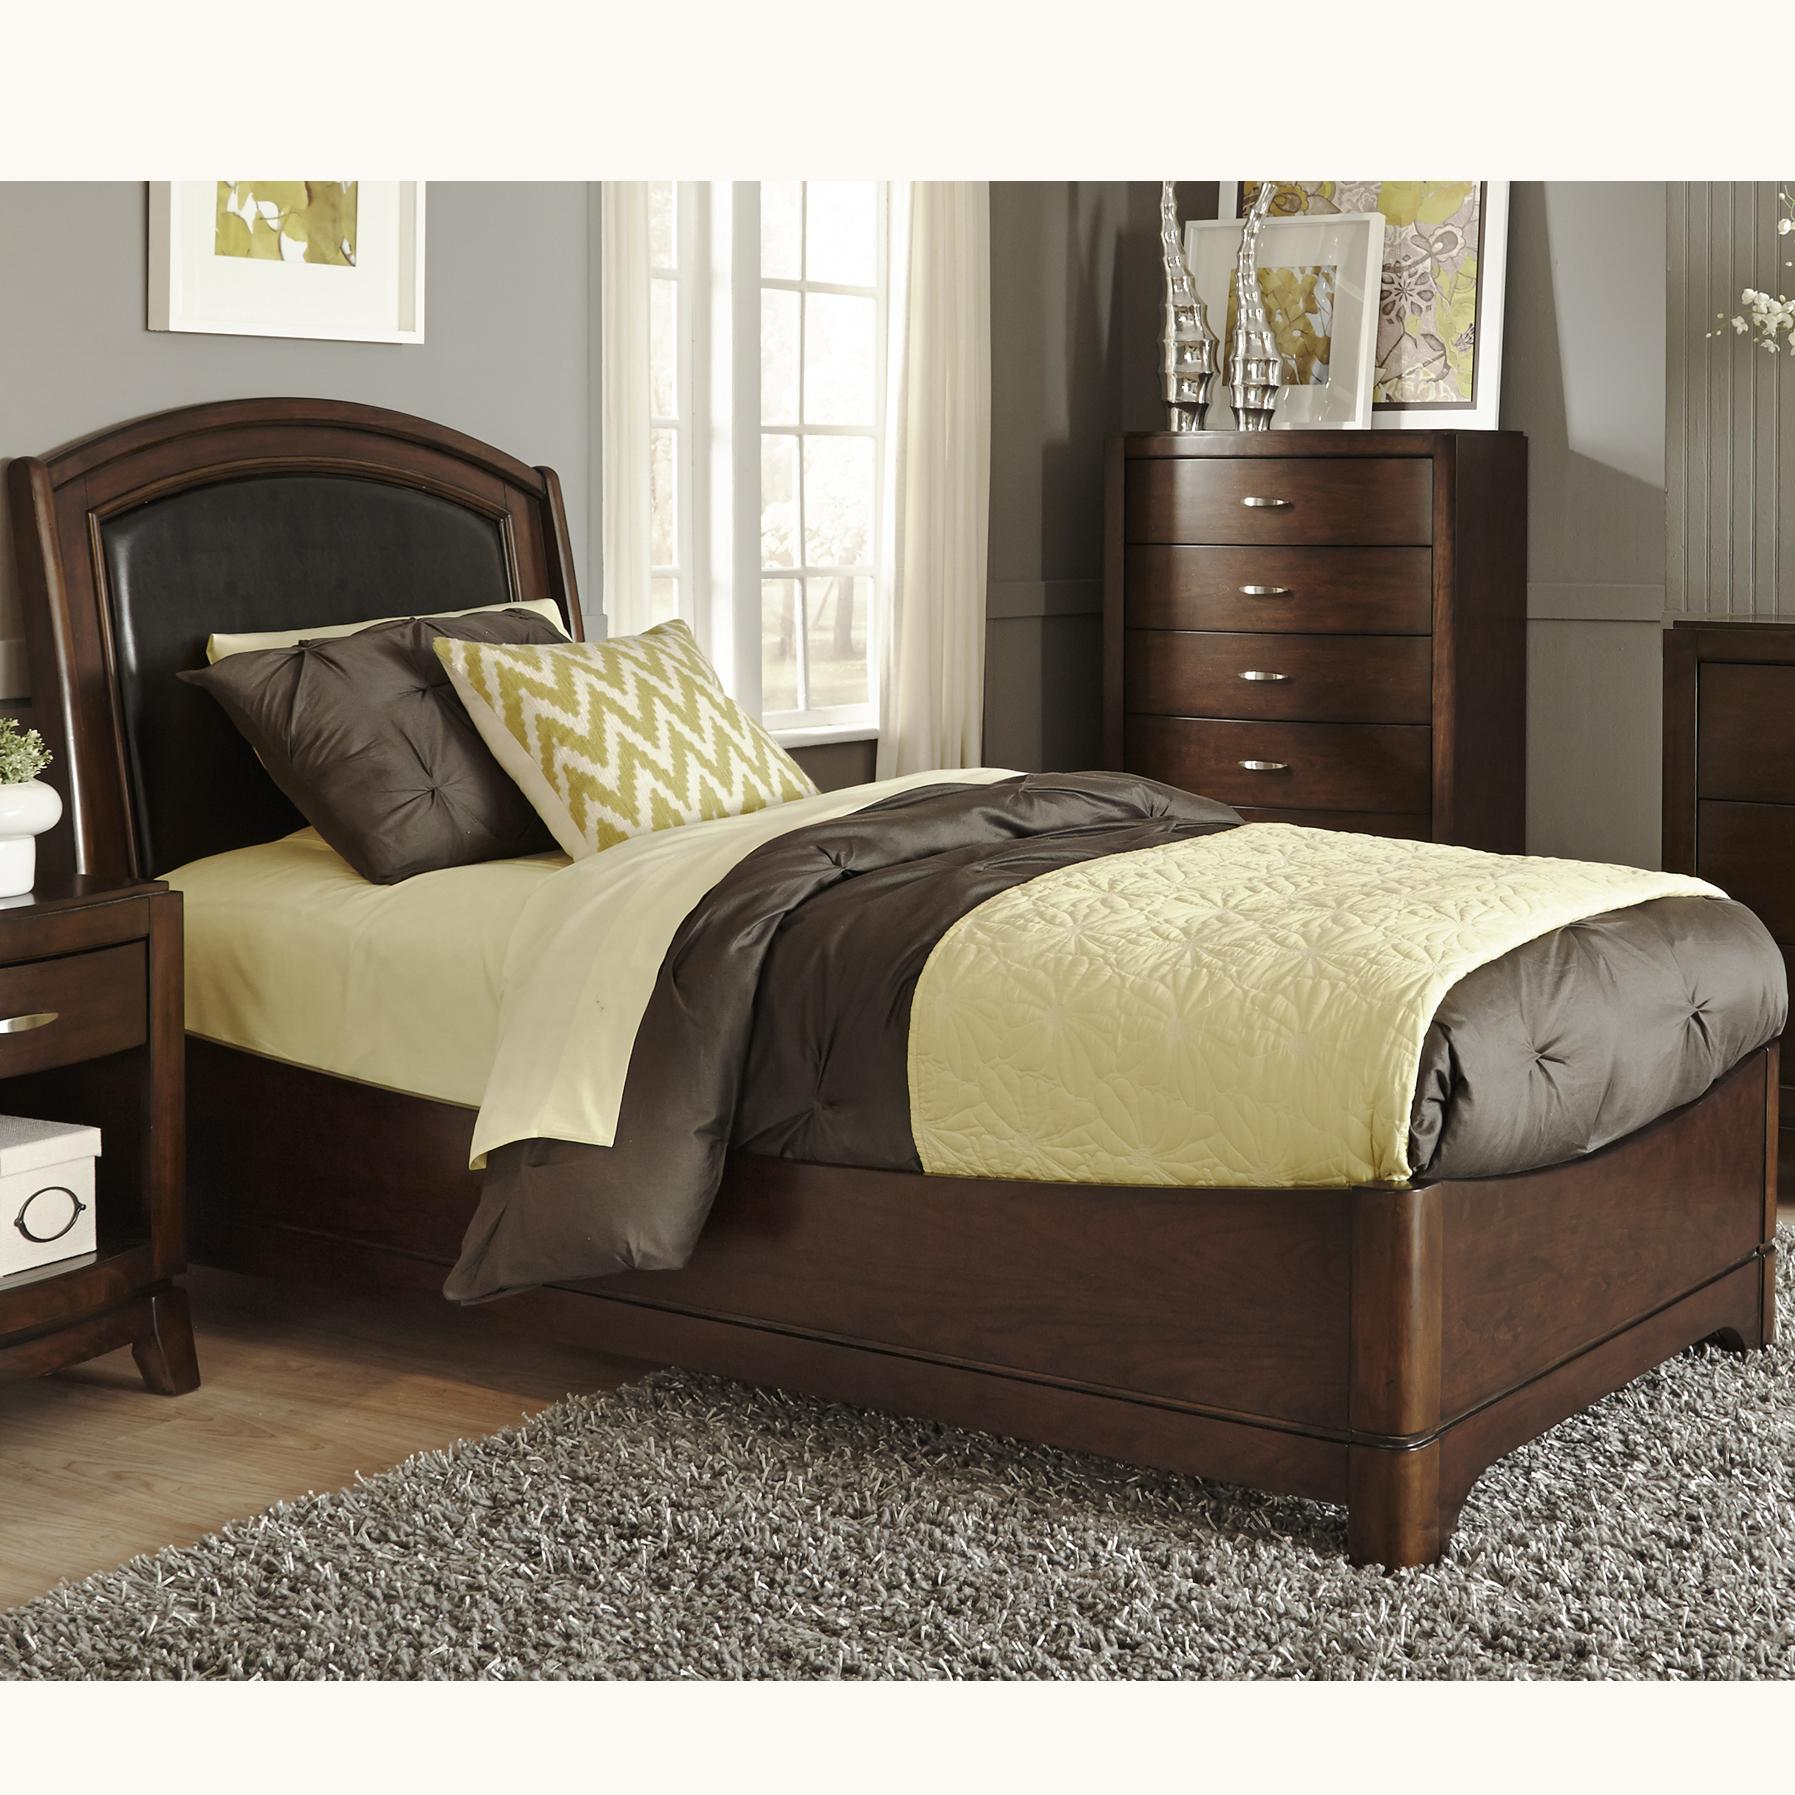 Liberty Furniture Avalon Twin Leather Bed - Item Number: 505-YBR-TLB